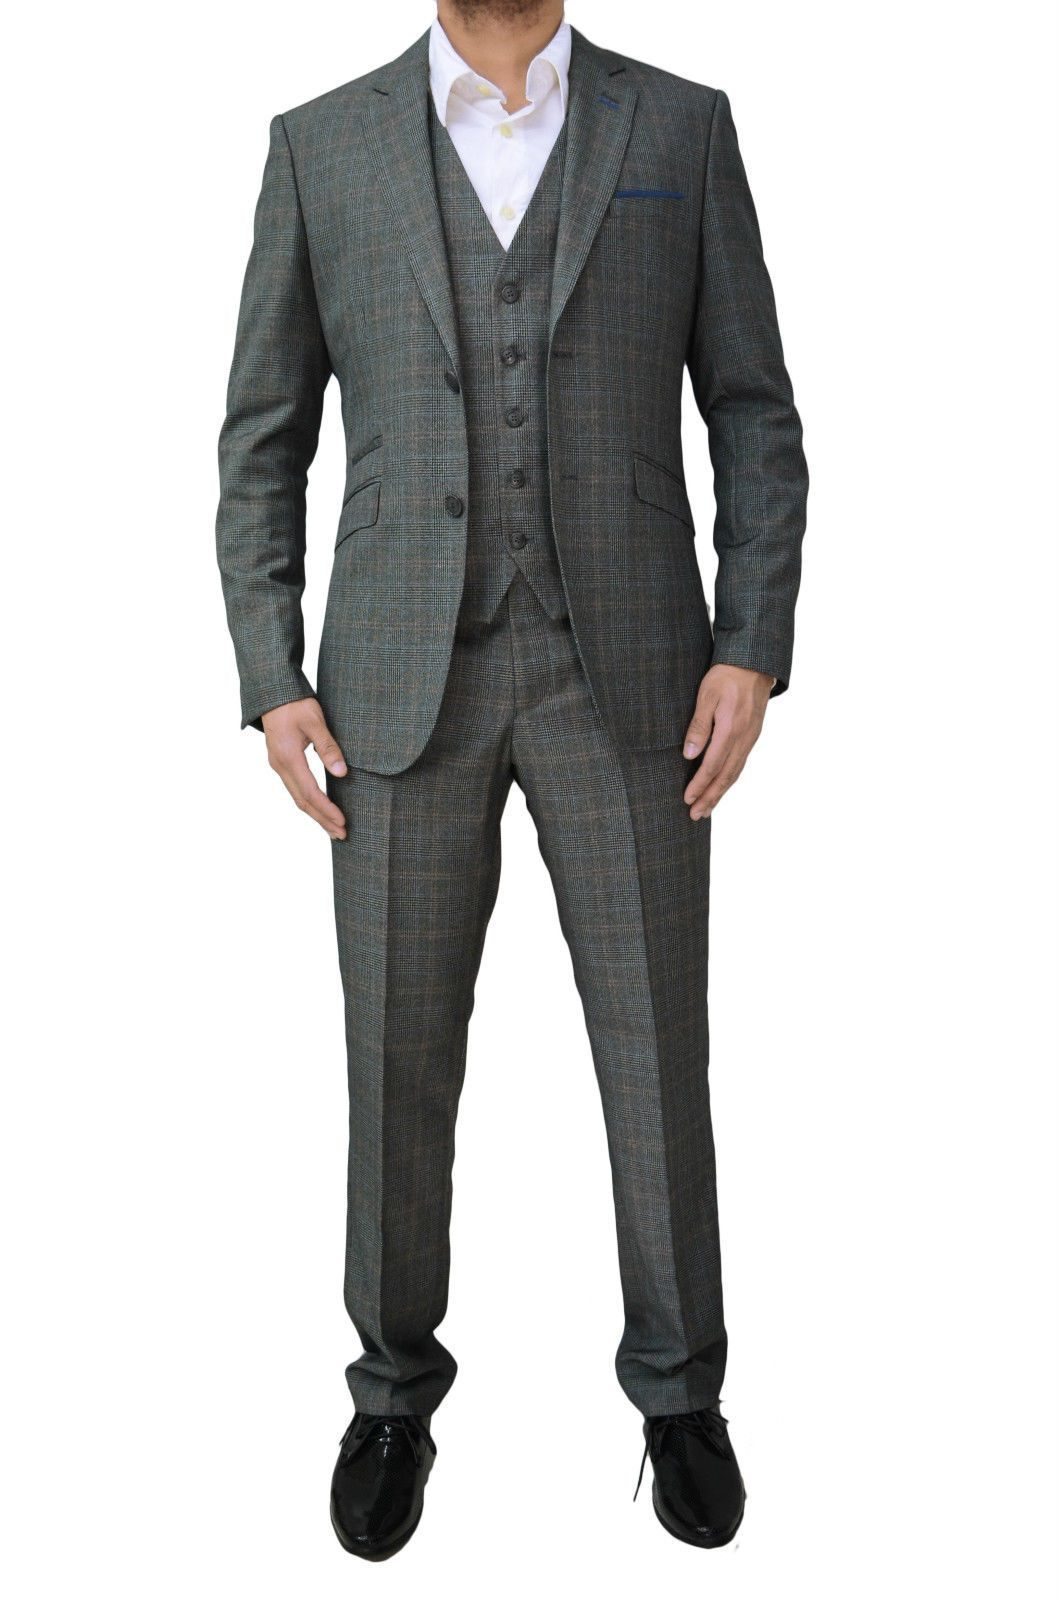 Mens Cavani Classic Tweed Summer Wedding 3 Piece Suit Tailored Fit